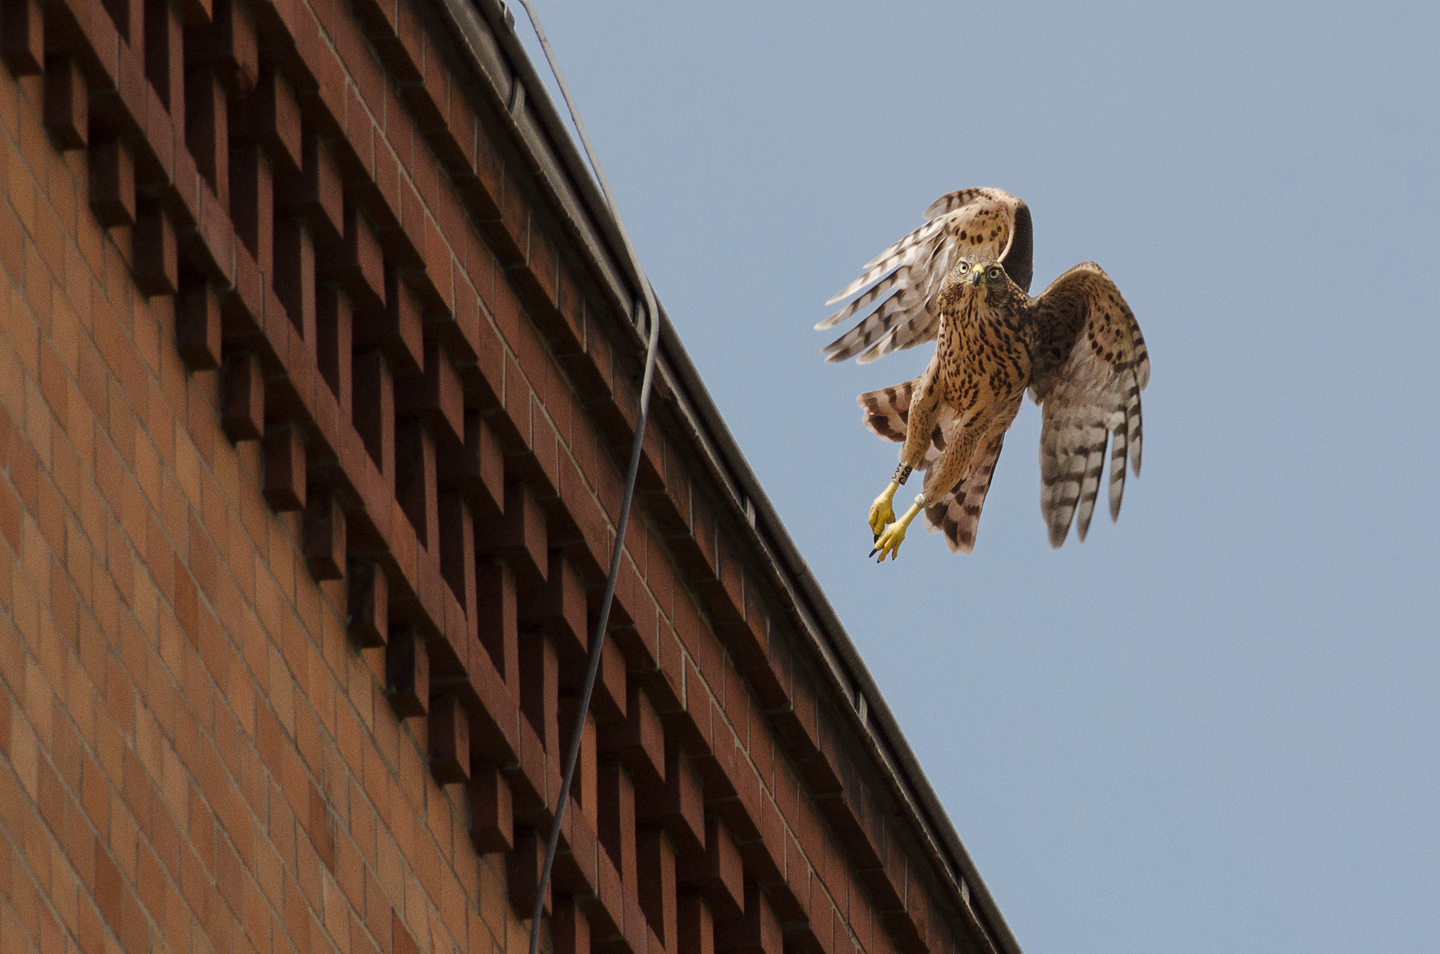 There are over 100 breeding pairs in Berlin, with many more juveniles and unpaired birds making their homes in the city